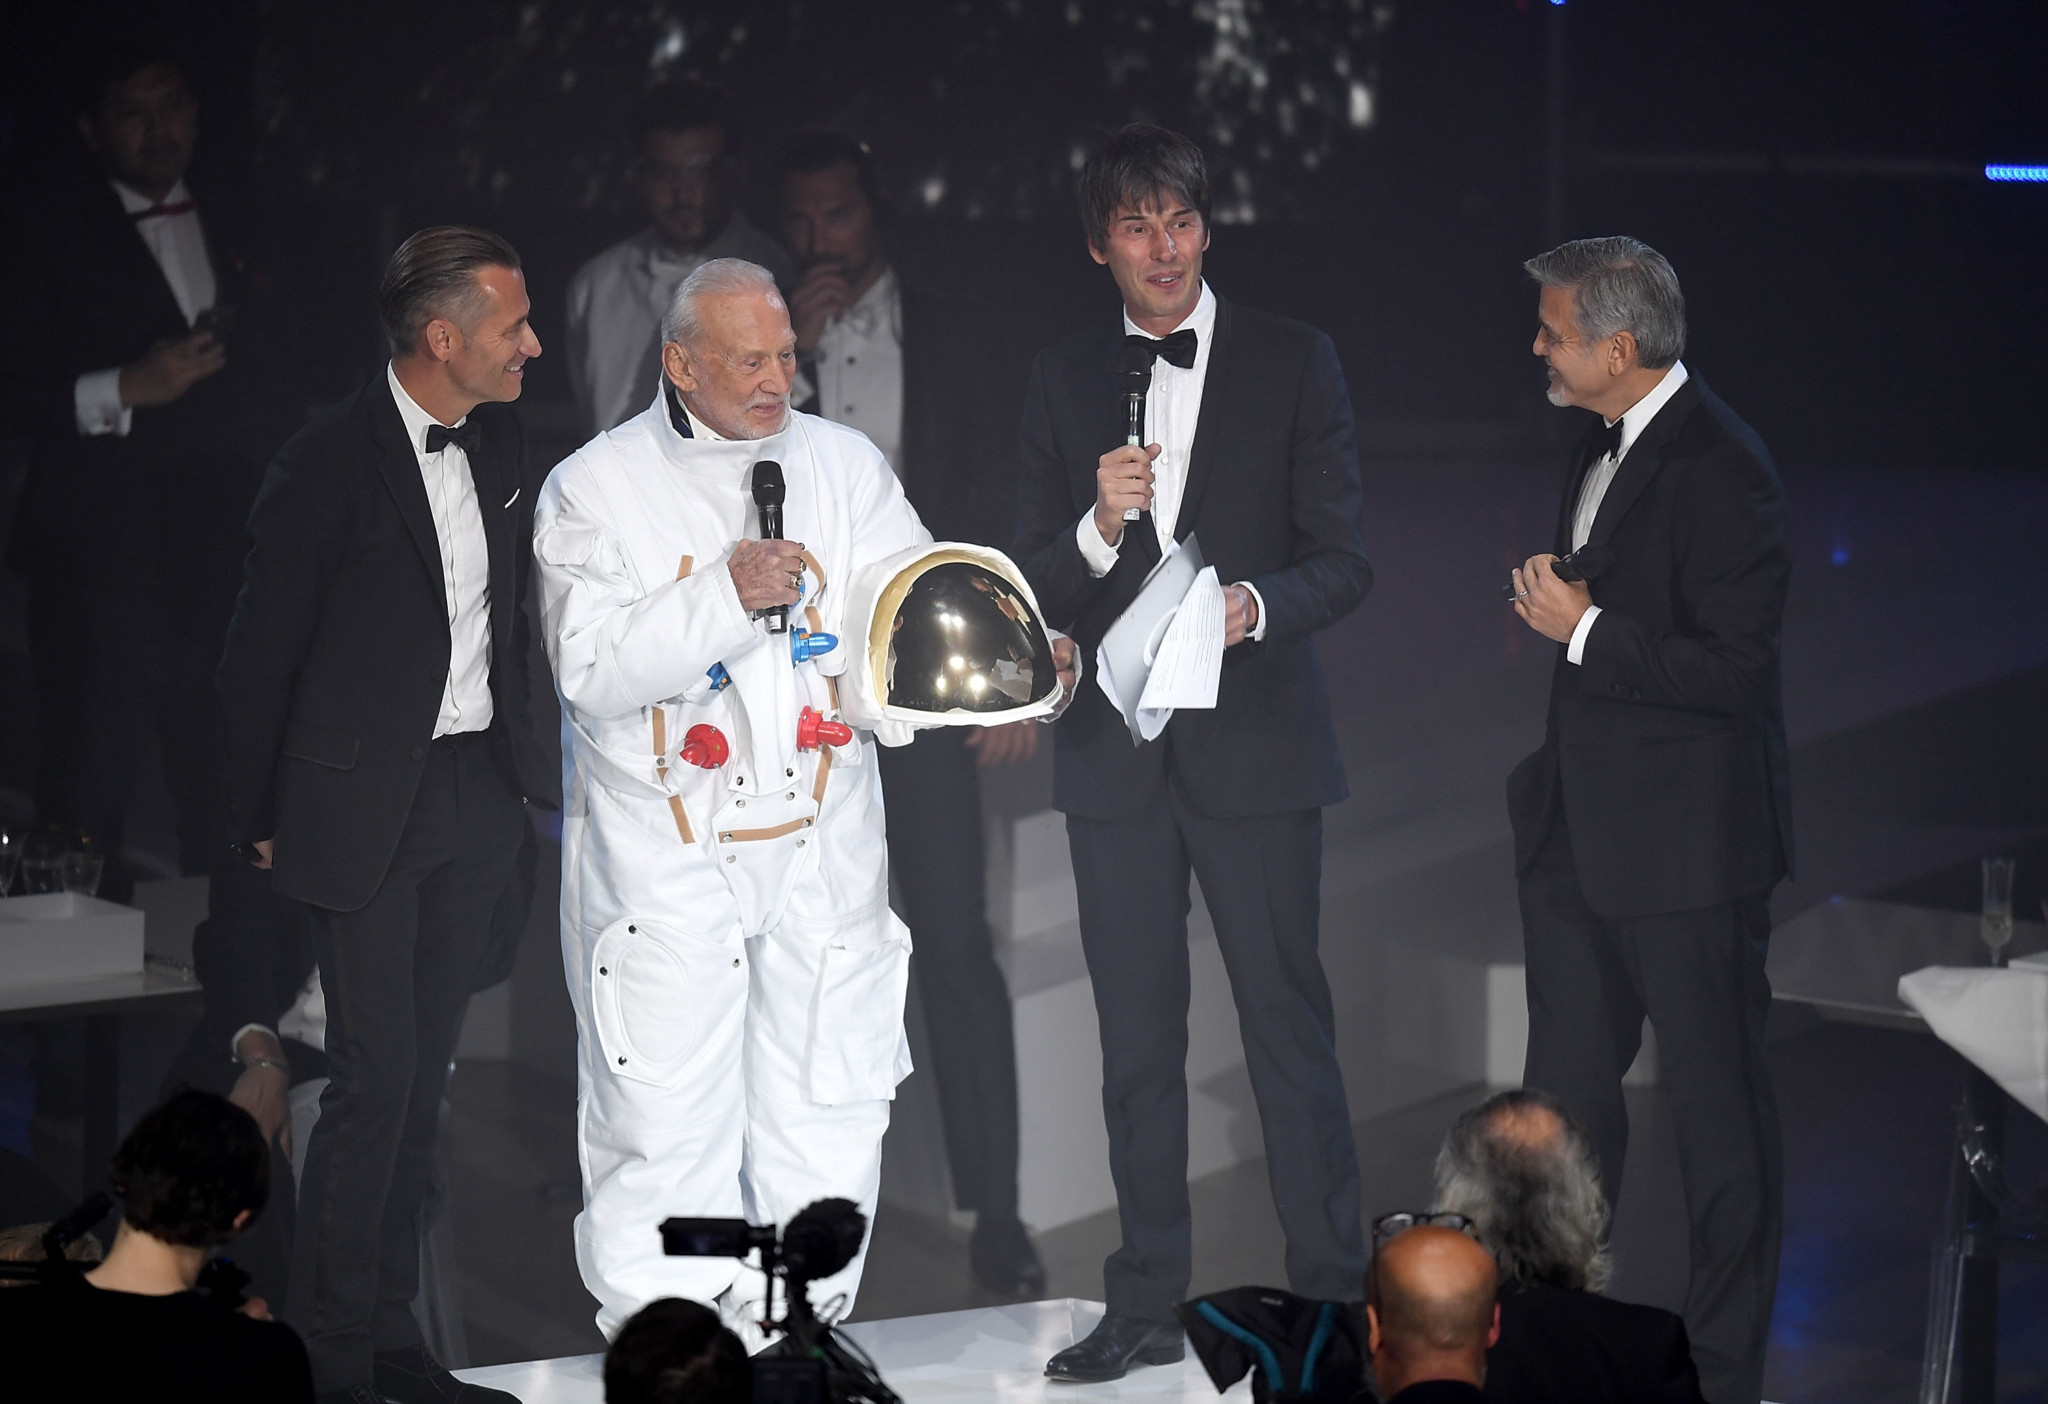 Omega President and CEO Raynald Aeschlimann, Buzz Aldrin, Prof. Brian Cox and George Clooney on stage at the OMEGA 'Lost In Space' dinner to celebrate the 60th anniversary of the OMEGA Speedmaster.